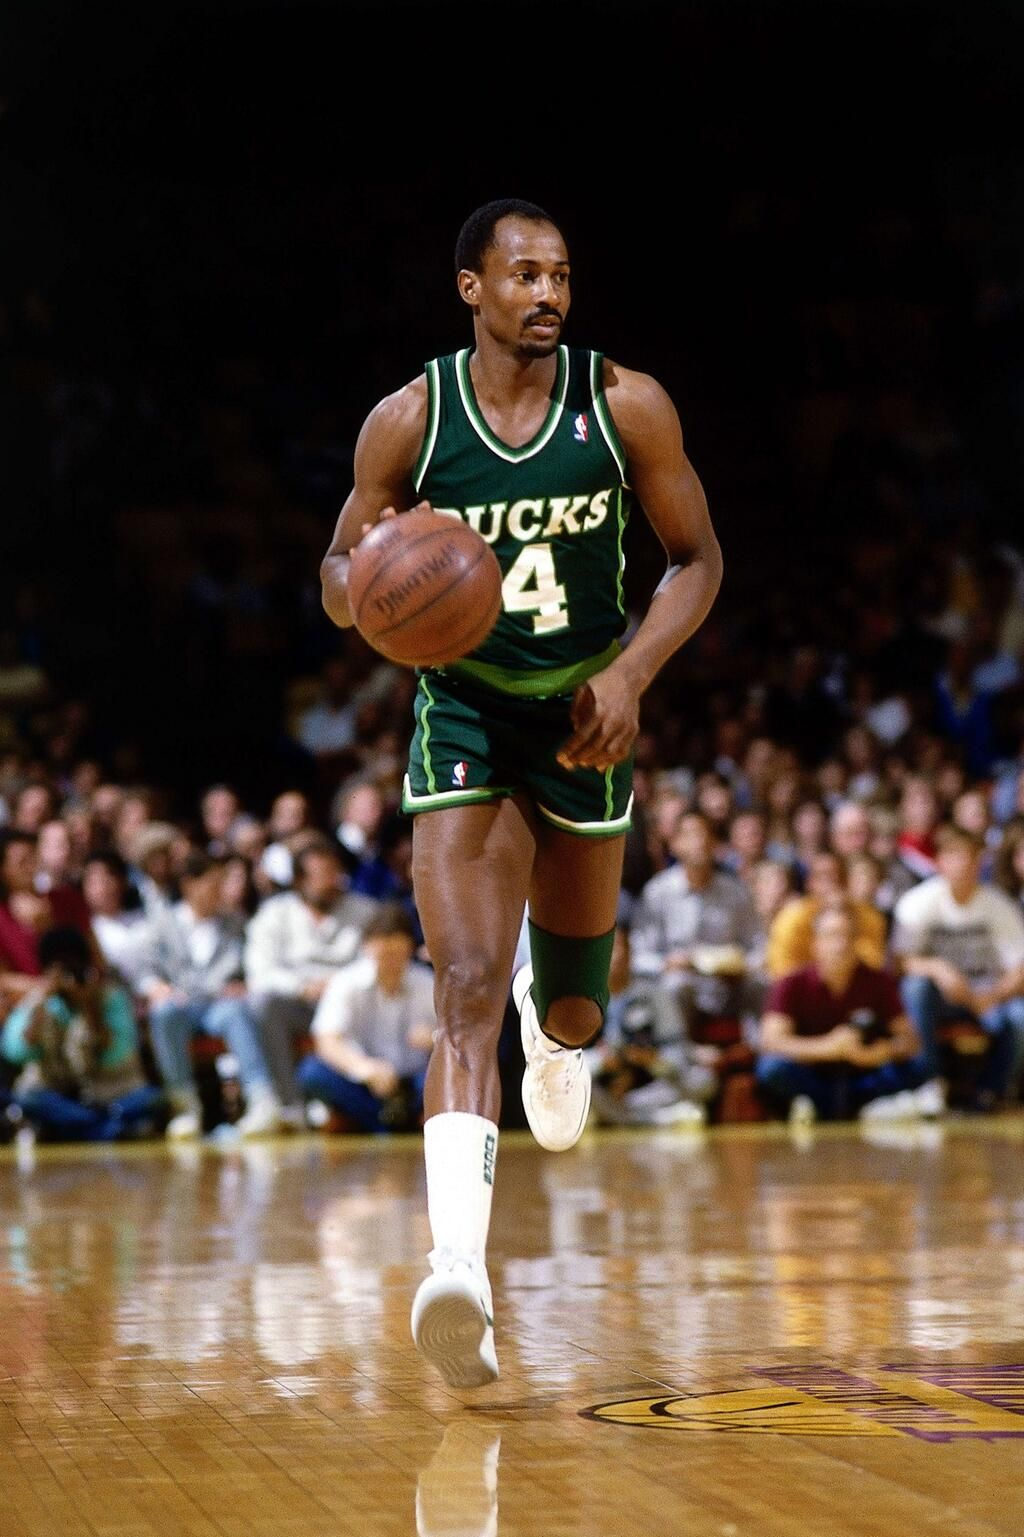 Sidney Moncrief who played for the Milwaukee Bucks from 1979 to